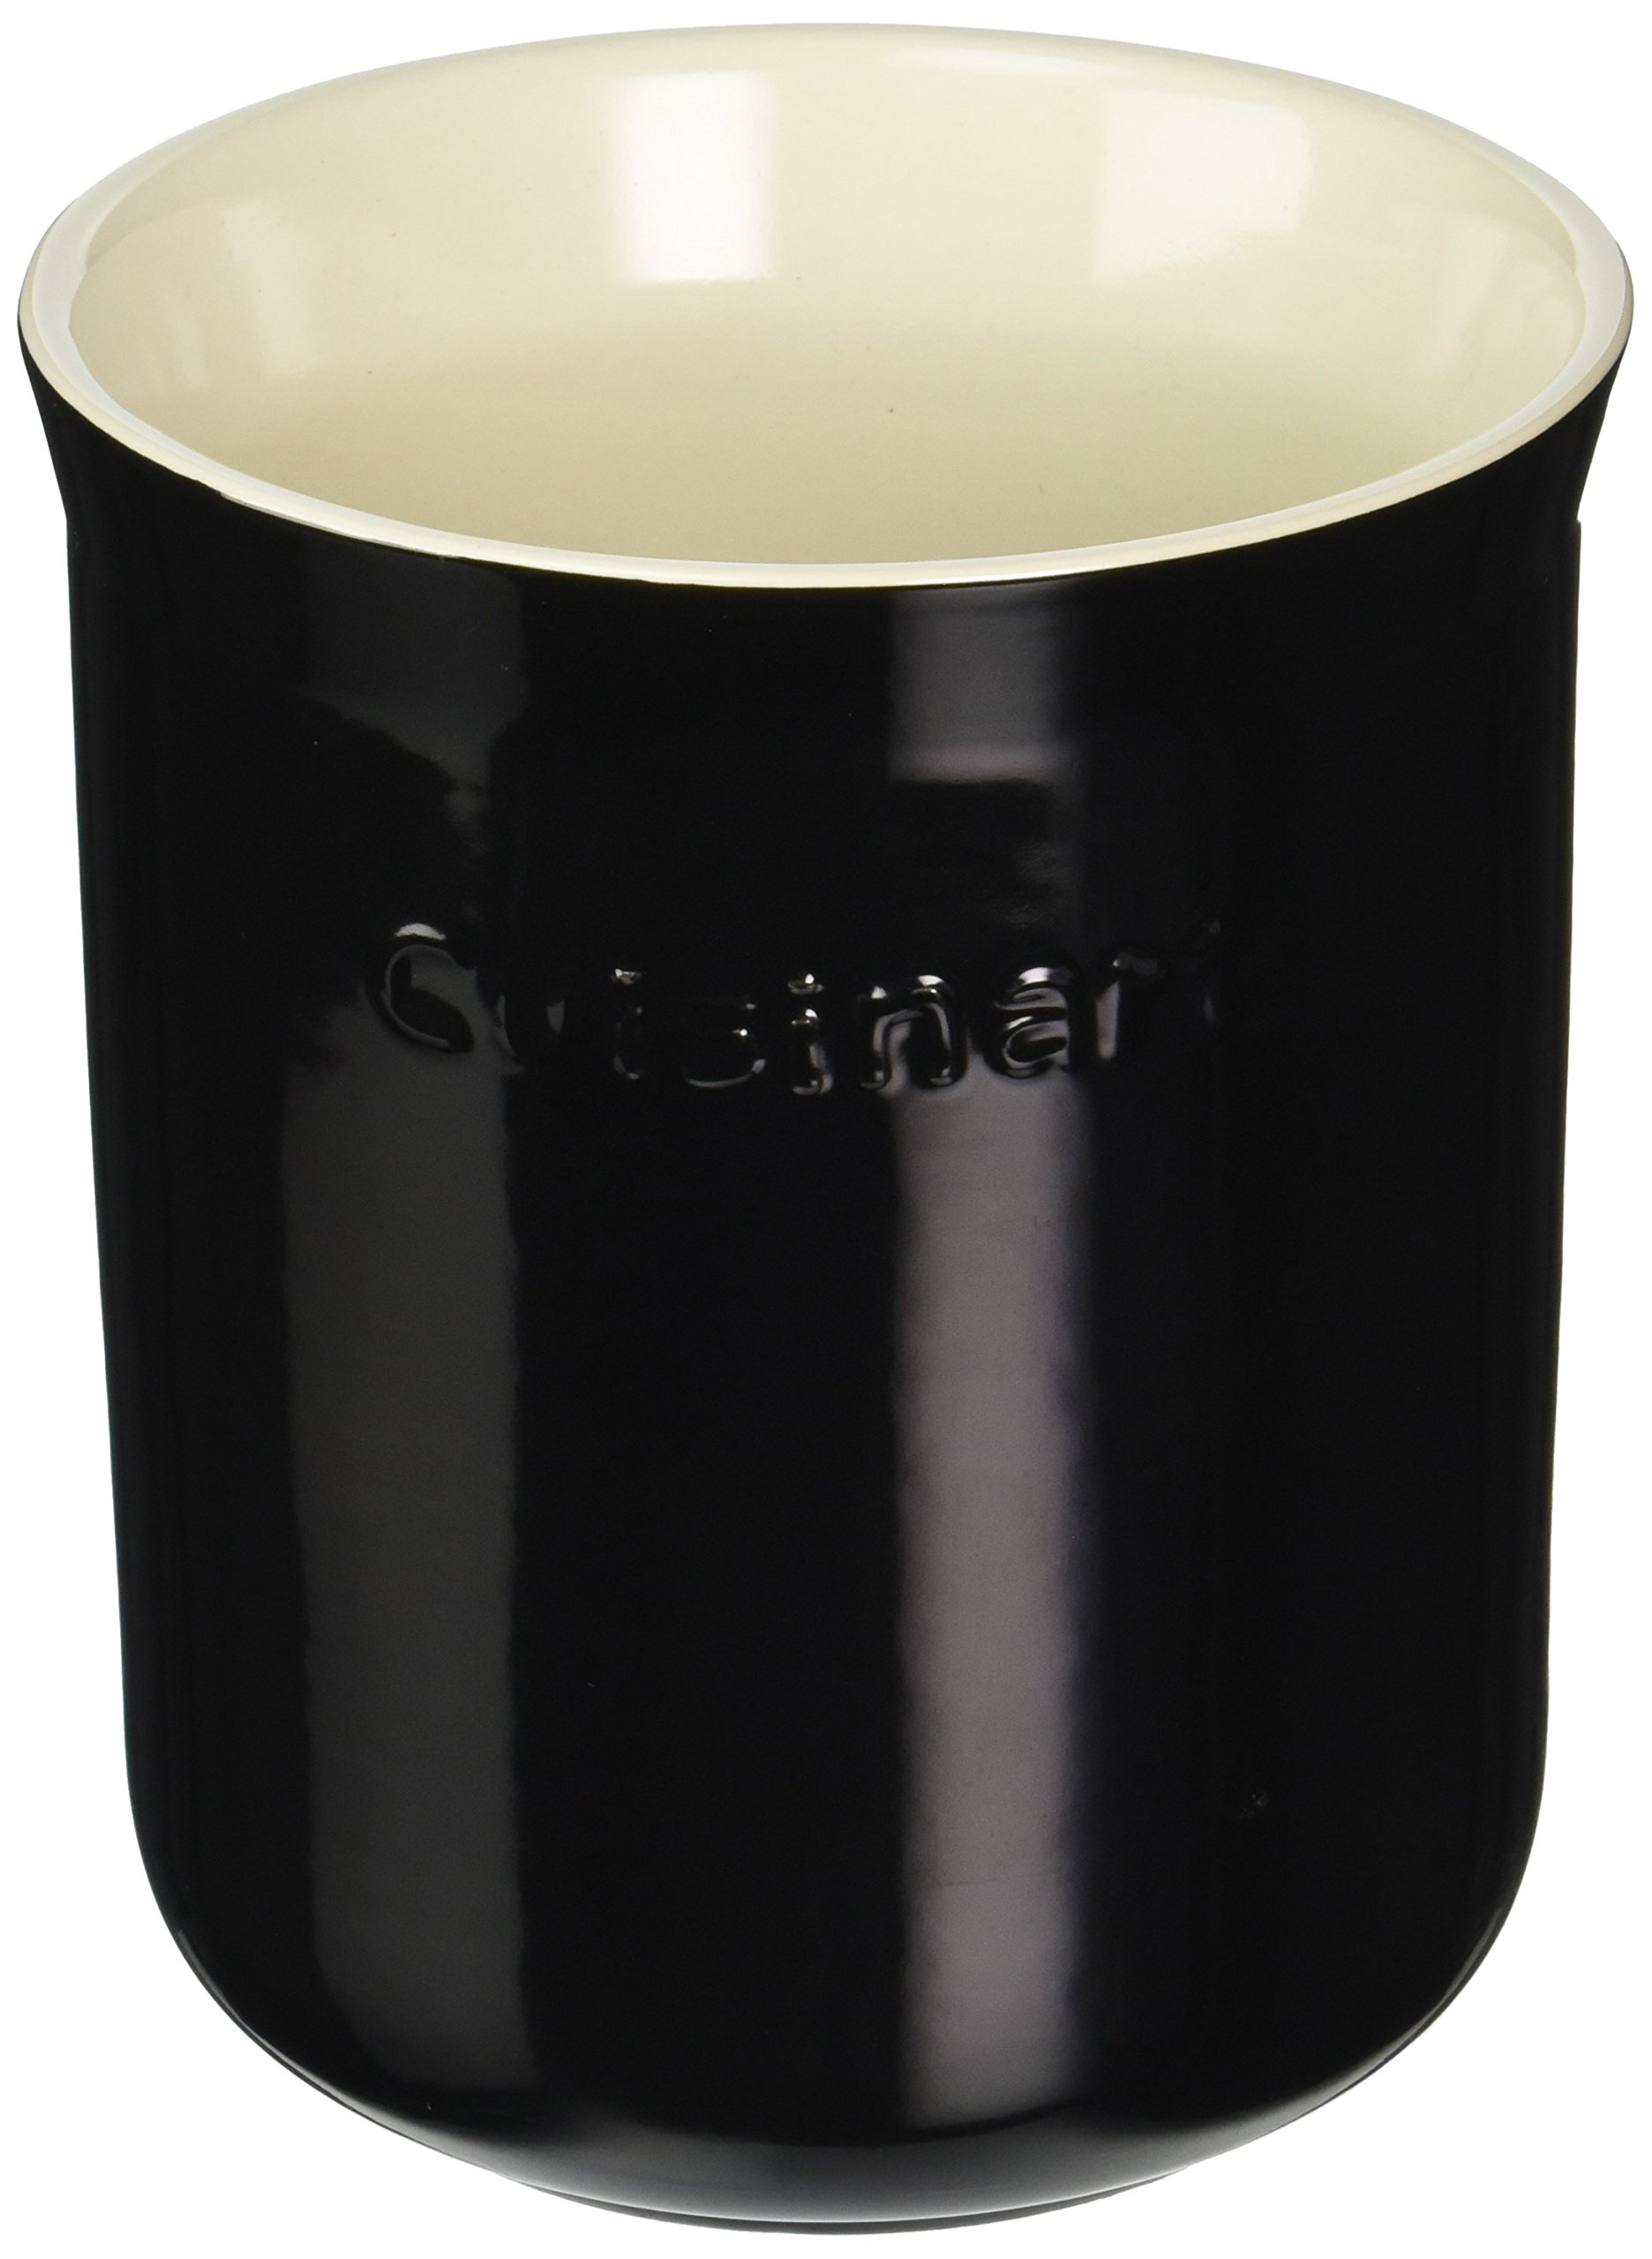 Cuisinart CTG-00-CCRBC Ceramic Crock, Black and Cream by Cuisinart